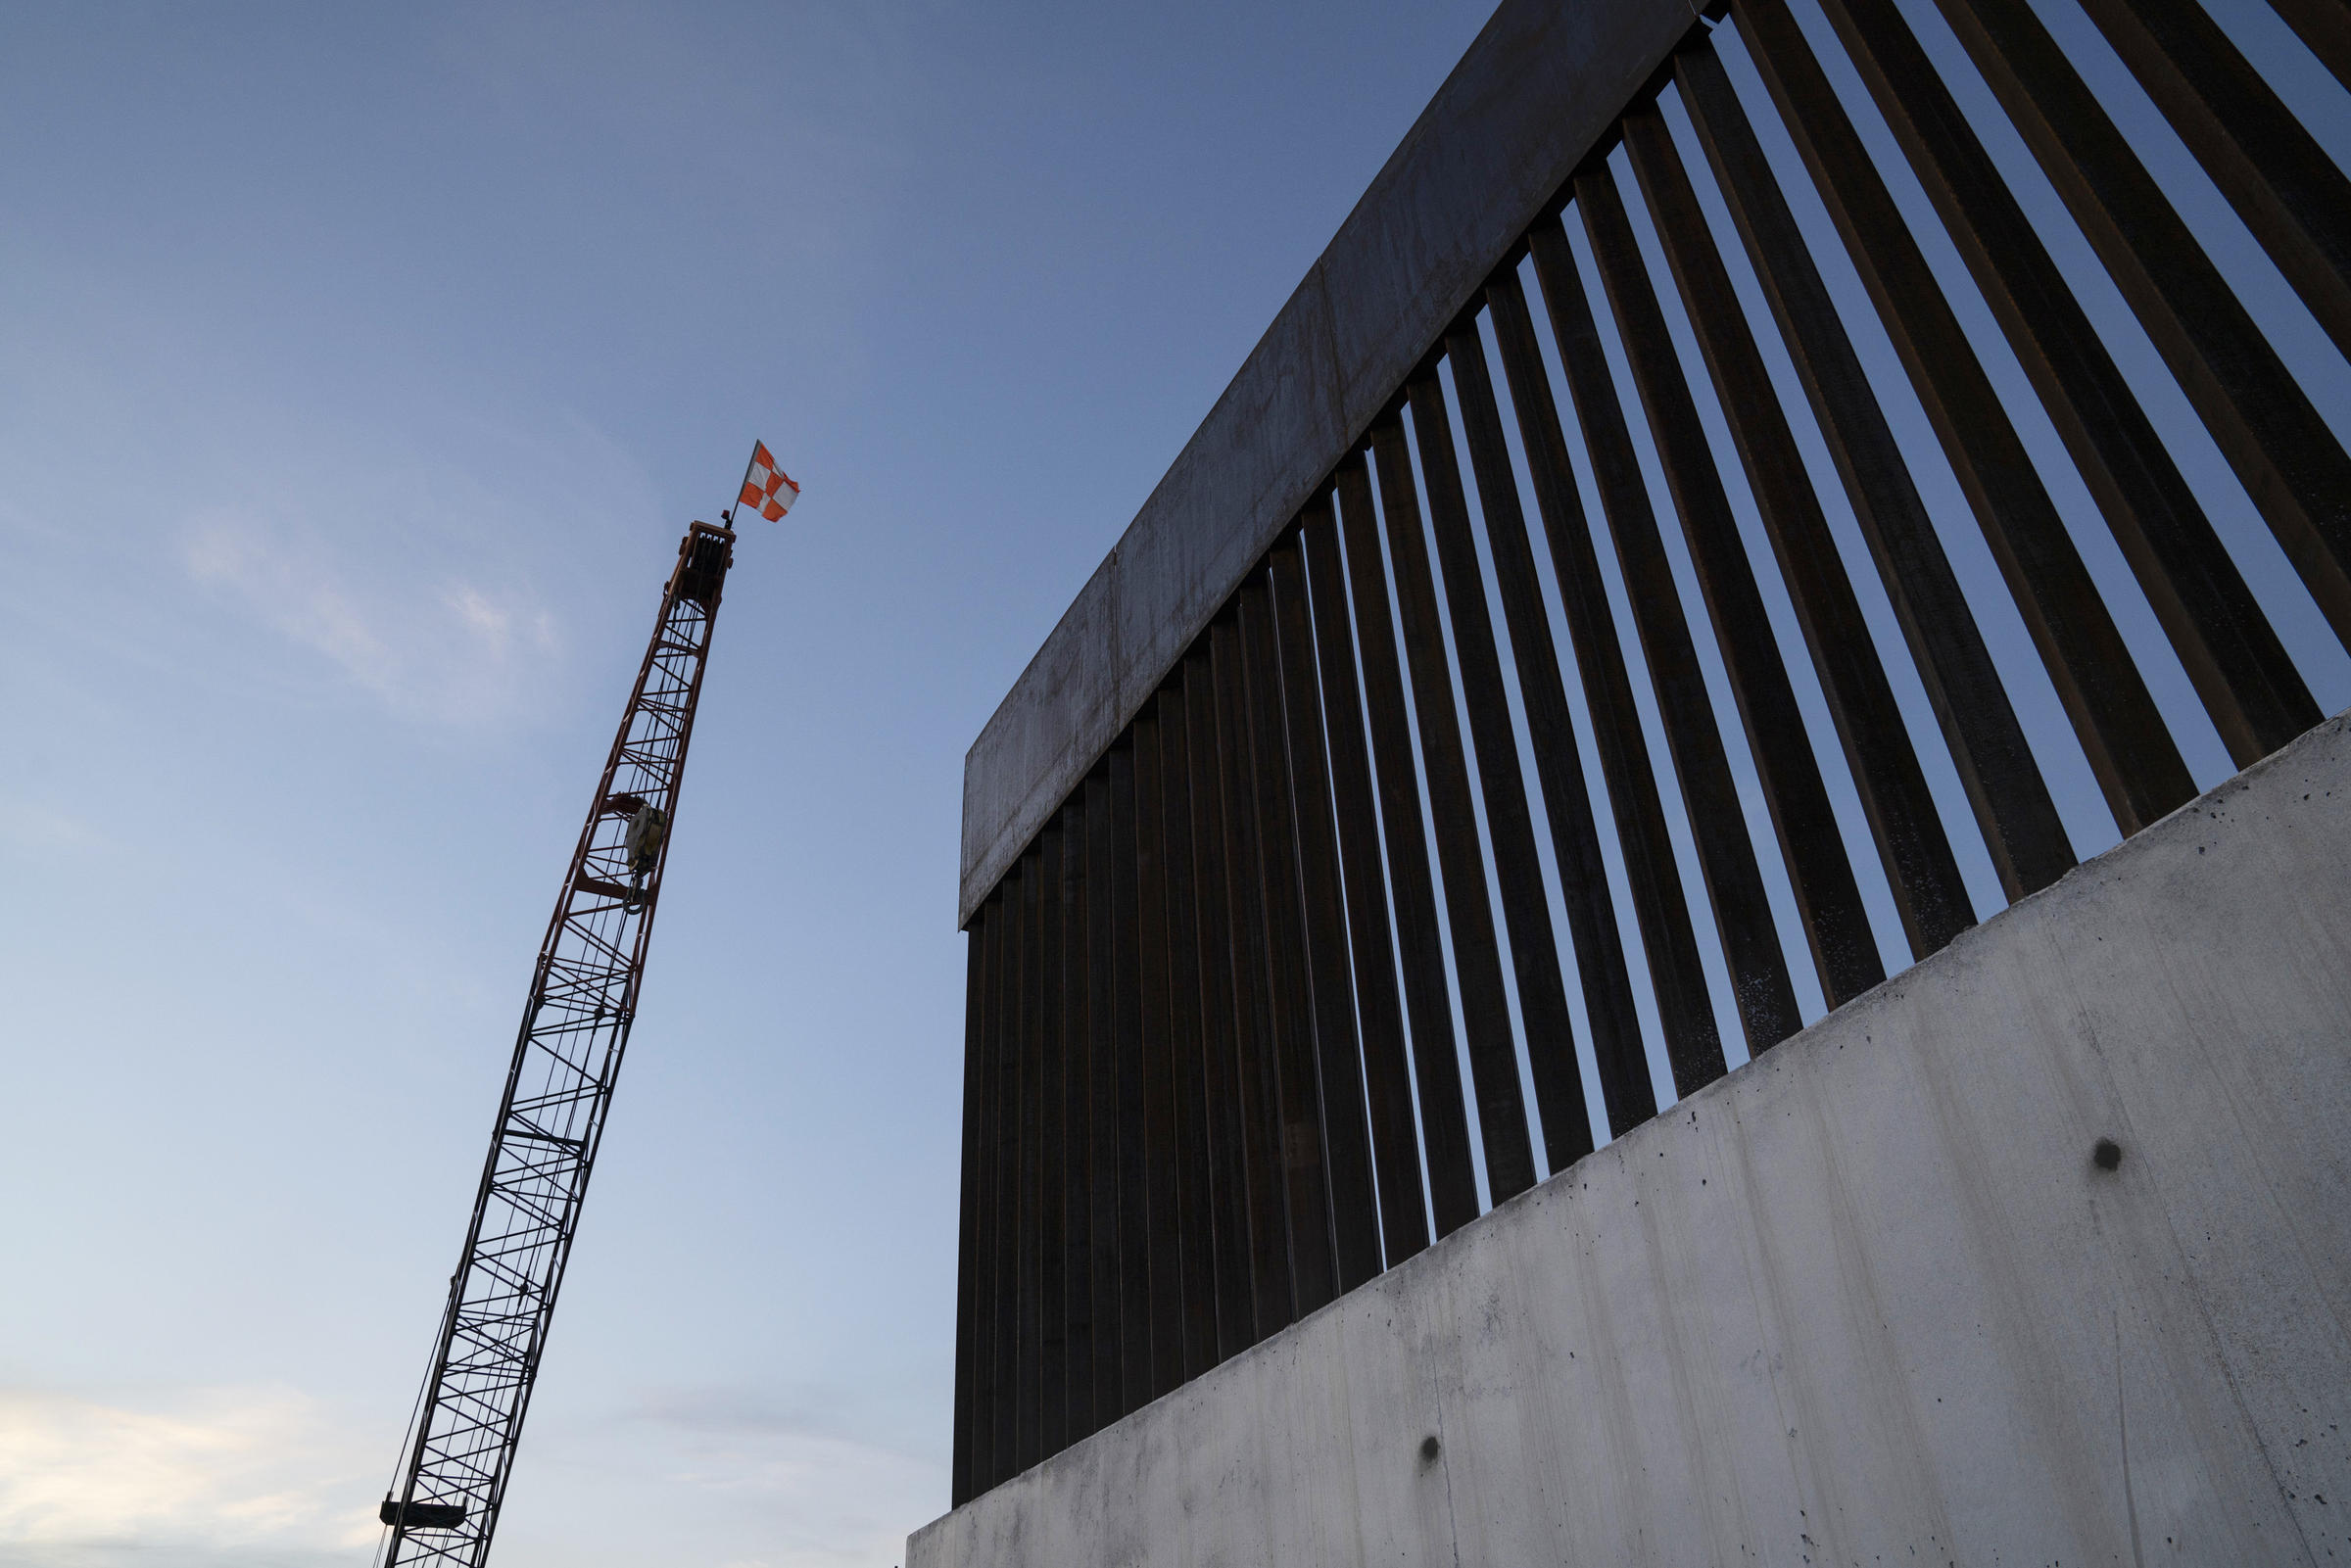 $11 Billion And Counting: Trump's Border Wall Would Be The World's Most Costly